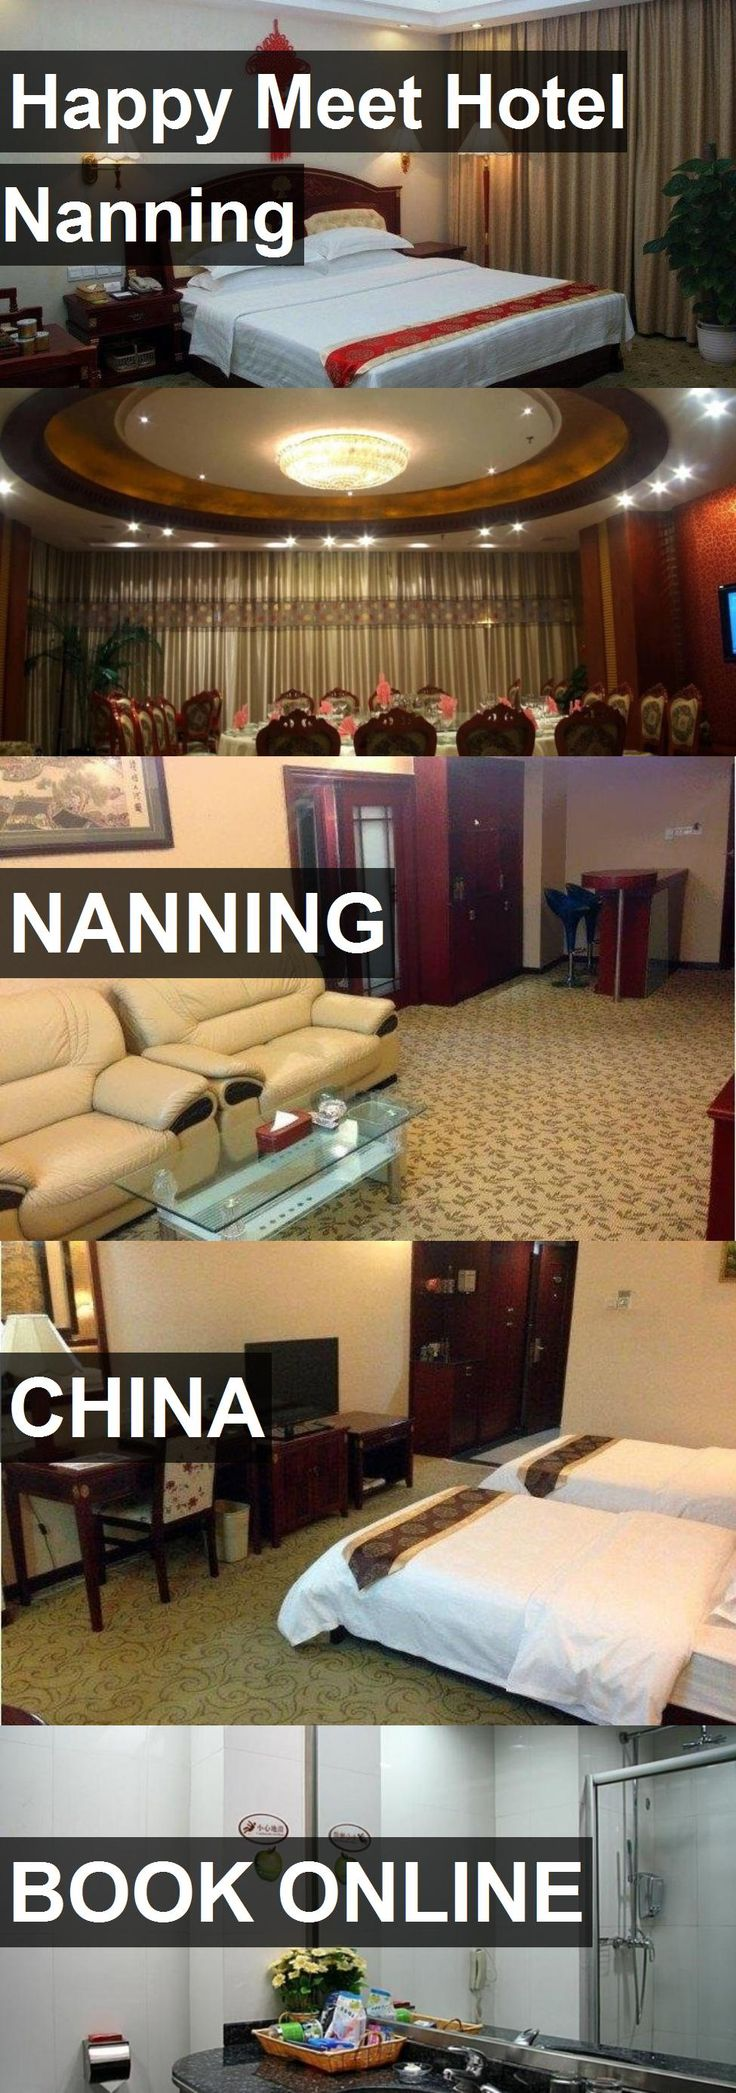 Happy Meet Hotel Nanning in Nanning, China. For more information, photos, reviews and best prices please follow the link. #China #Nanning #travel #vacation #hotel